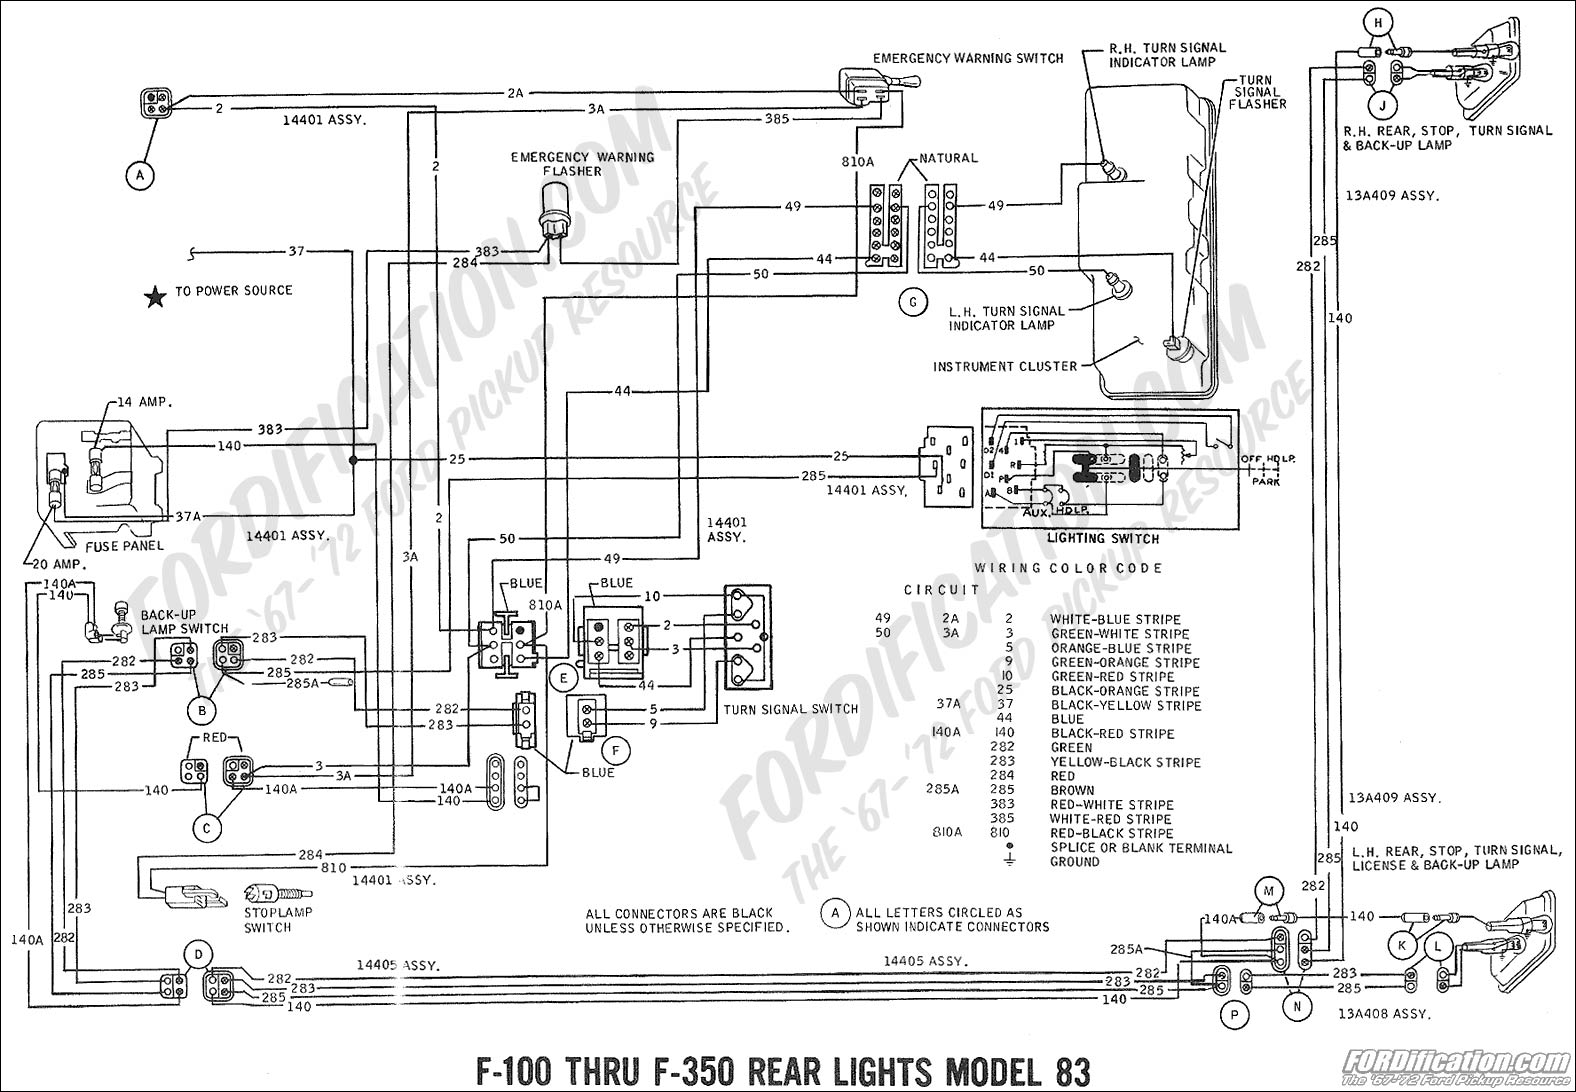 1969 F100 Wiring Harness Diy Diagrams Ford Bronco Diagram Truck Technical Drawings And Schematics Section H Rh Fordification Com 1972